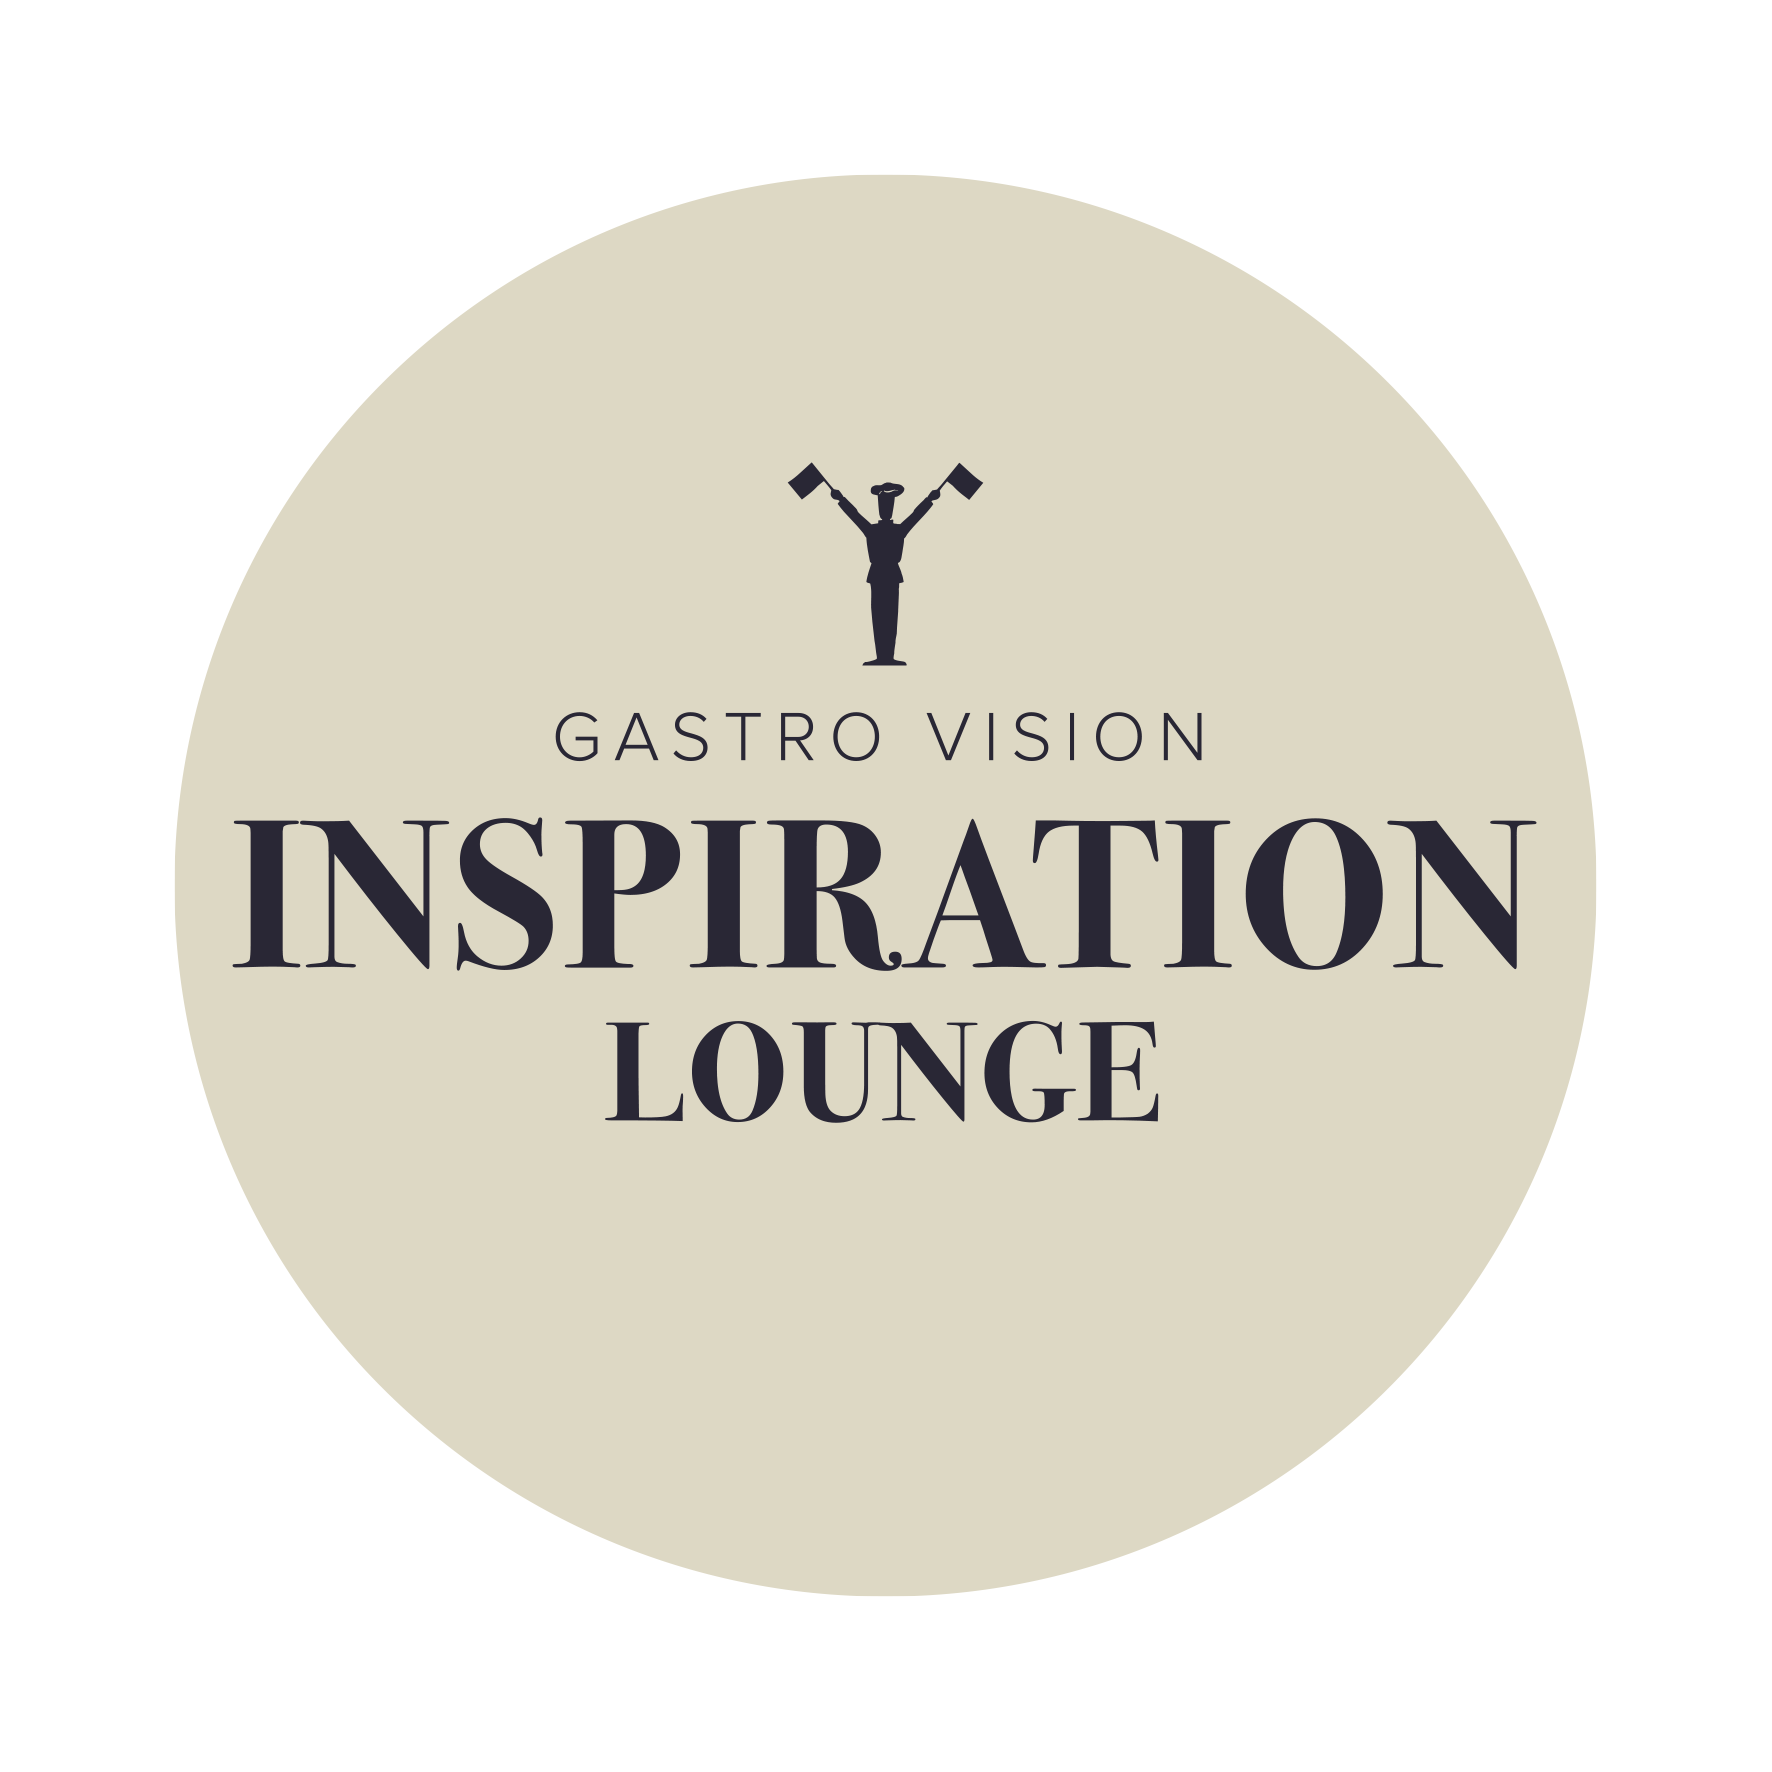 Gastro Vision - Inspiration Lounge